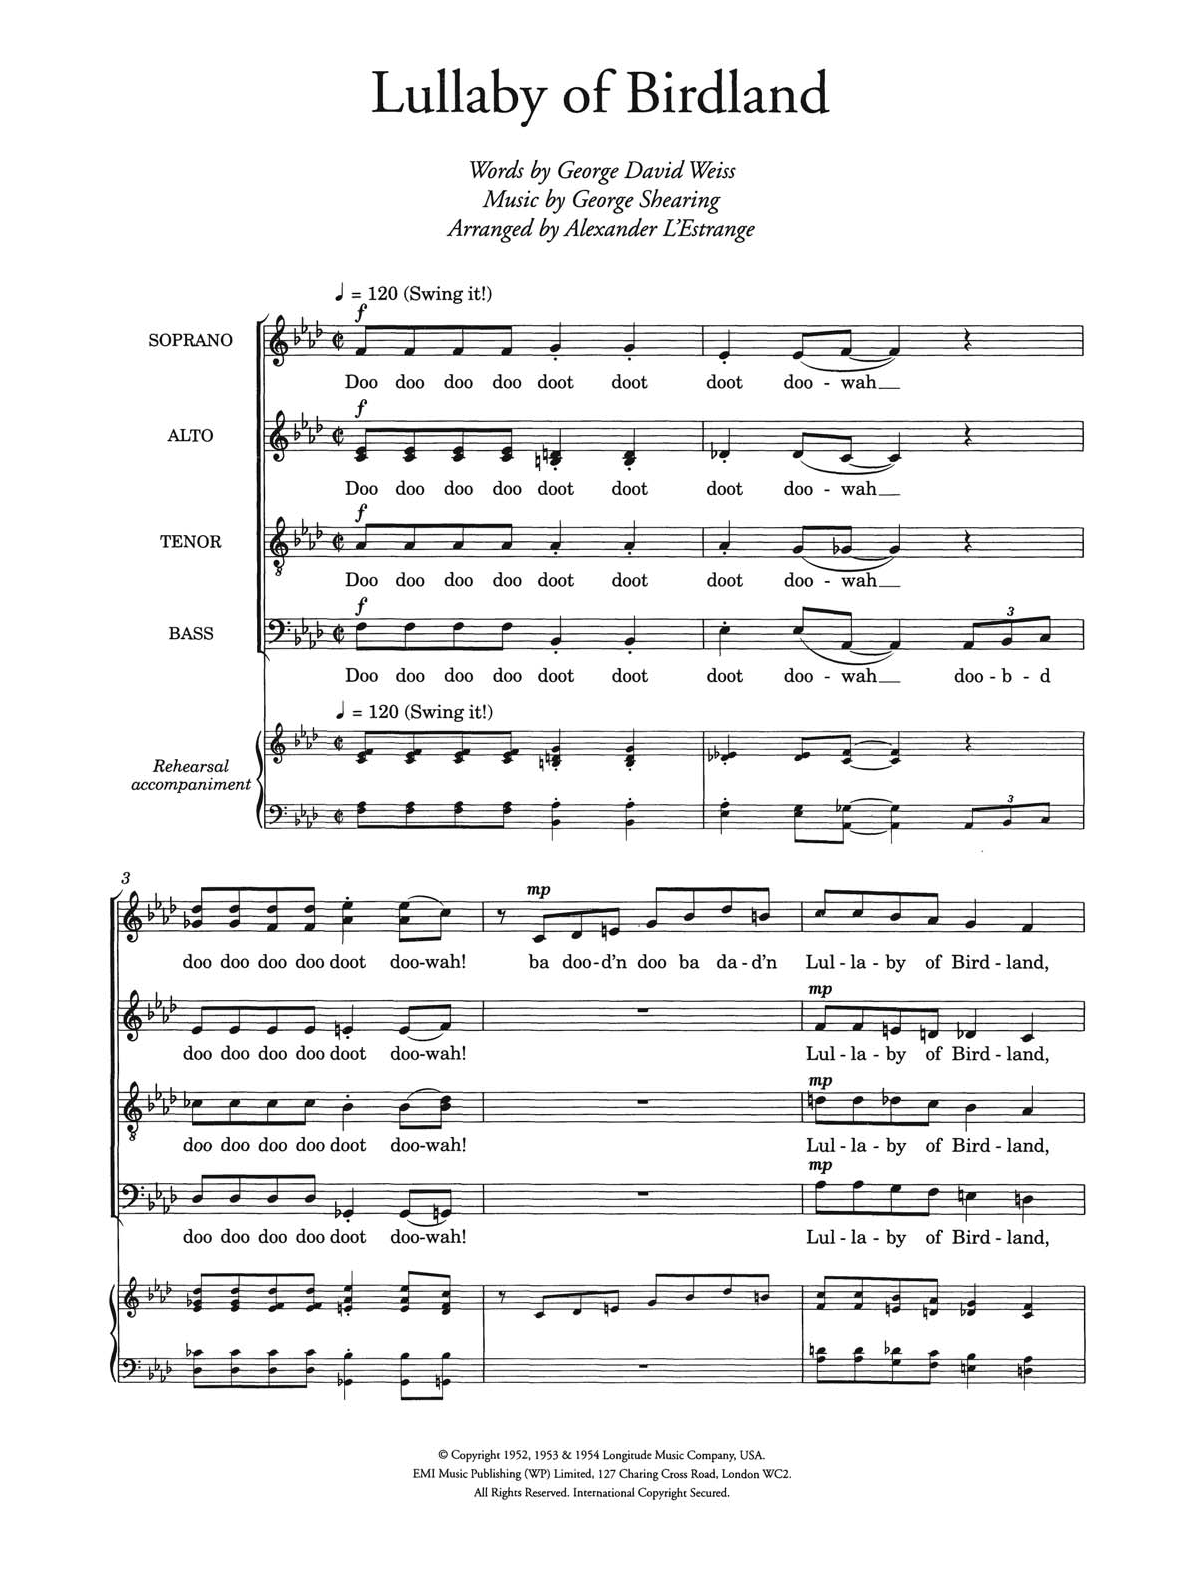 Lullaby Of Birdland (arr. Alexander L'Estrange) Sheet Music